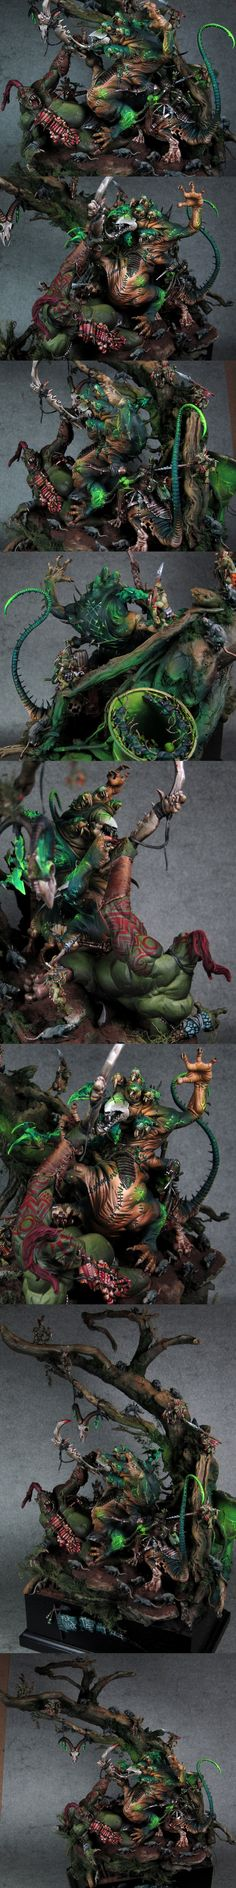 Skaven vs Orcs diorama 'For Whom the Bell Tolls.'